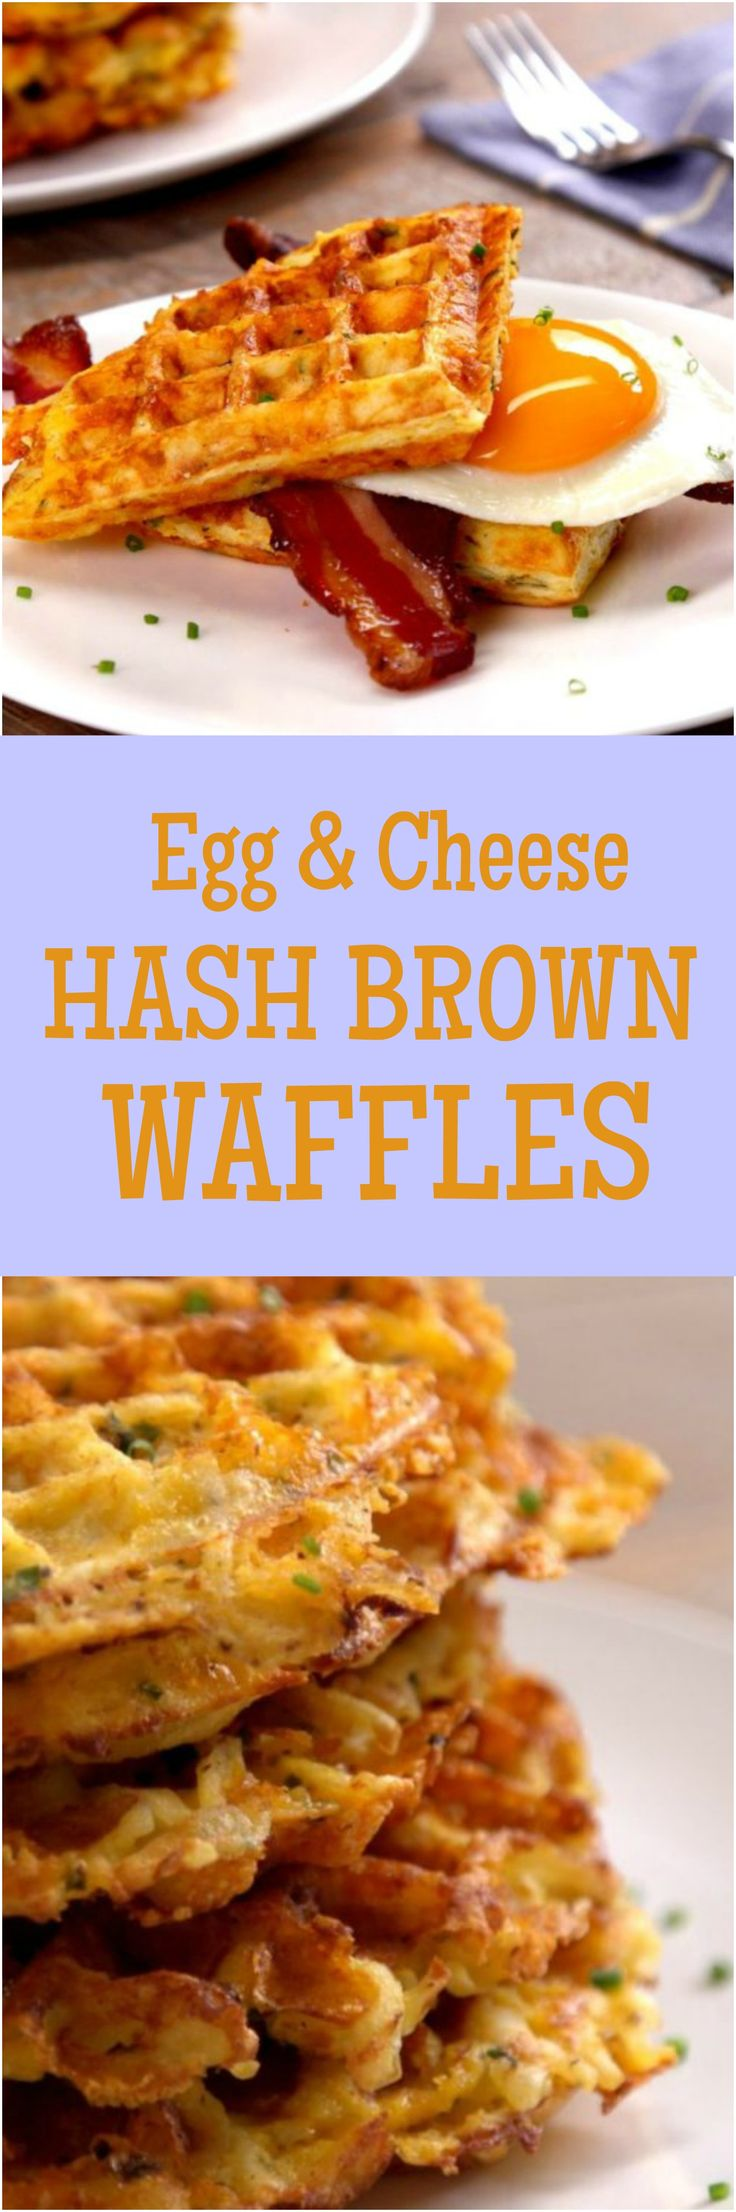 What happens when you grill all of your favorite breakfast flavors–eggs, cheddar cheese, chives, and hash browns–on a waffle iron? You get outrageous savory waffles that make syrup totally irrelevant.